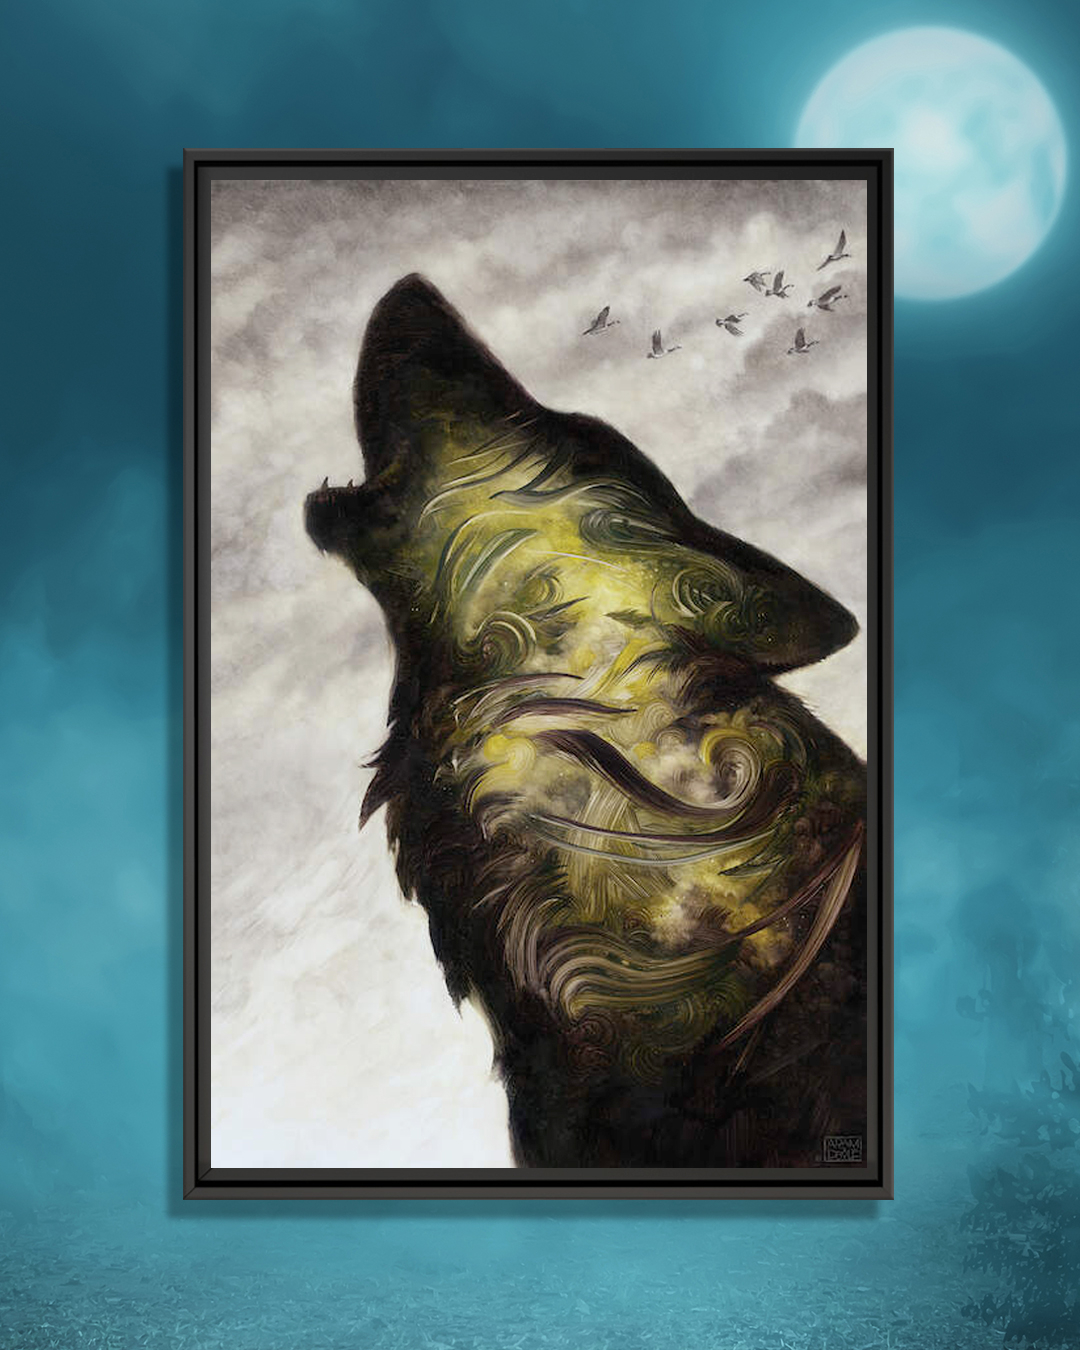 a howling wolf with green and gray swirls on fur and birds flying in distance